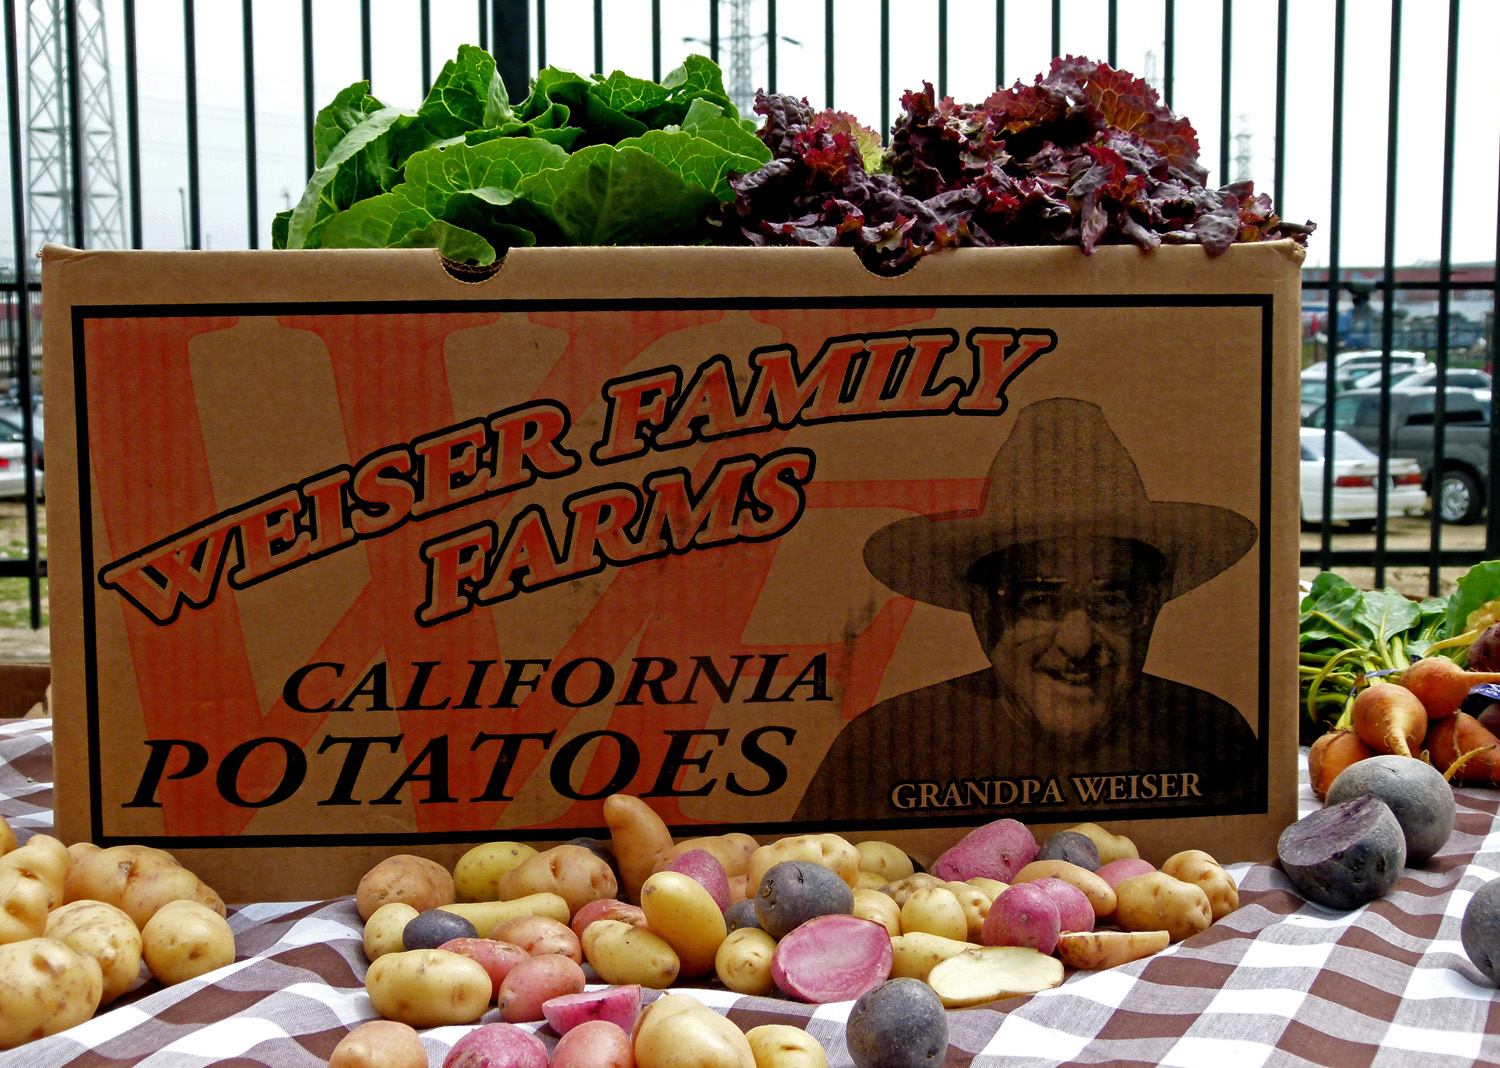 Weiser Family Farms Potatoes